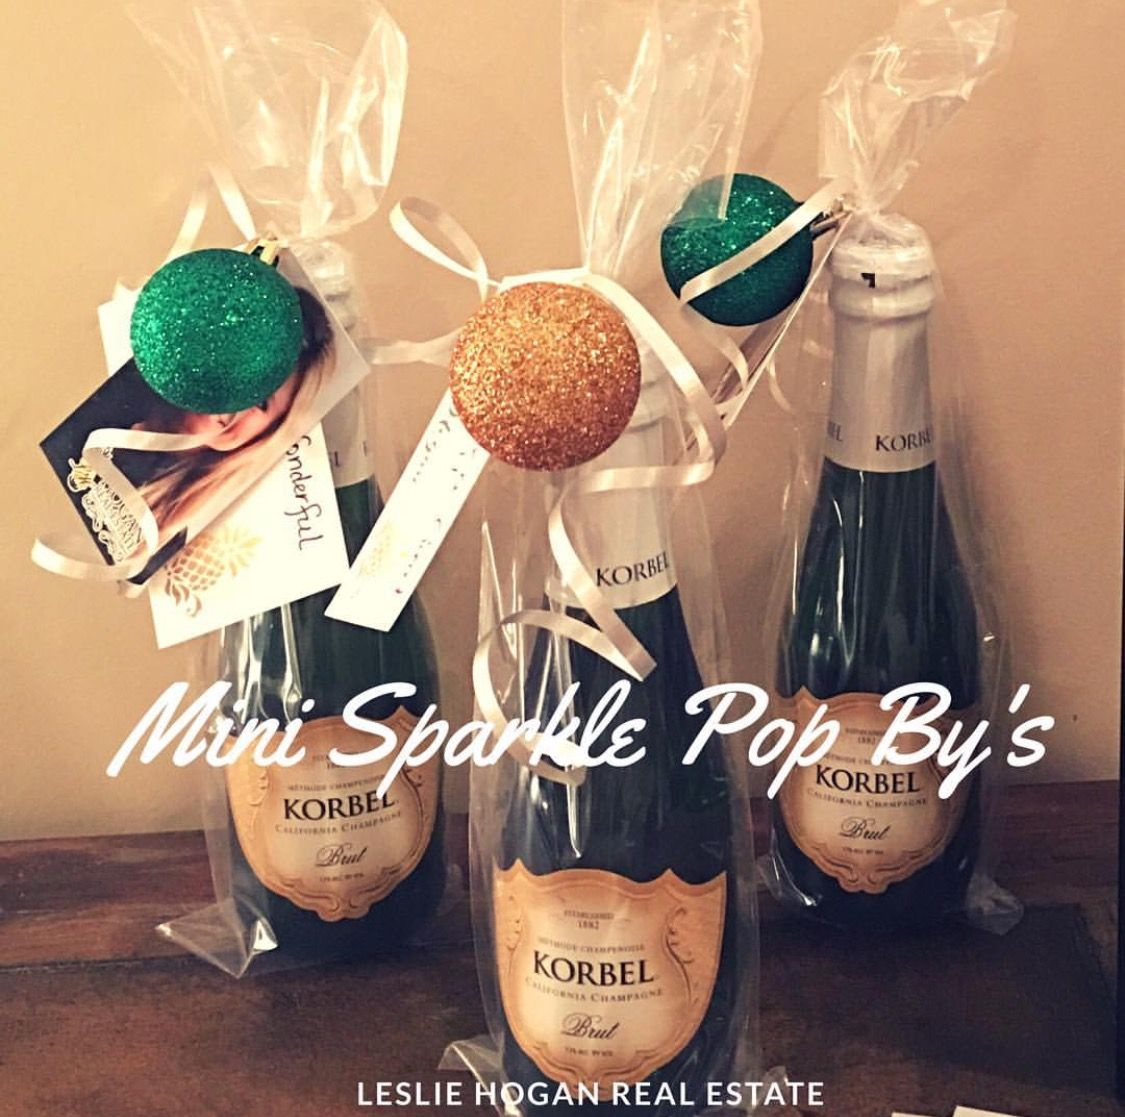 New Years Pop By for my clients lesliehoganrealestatekc